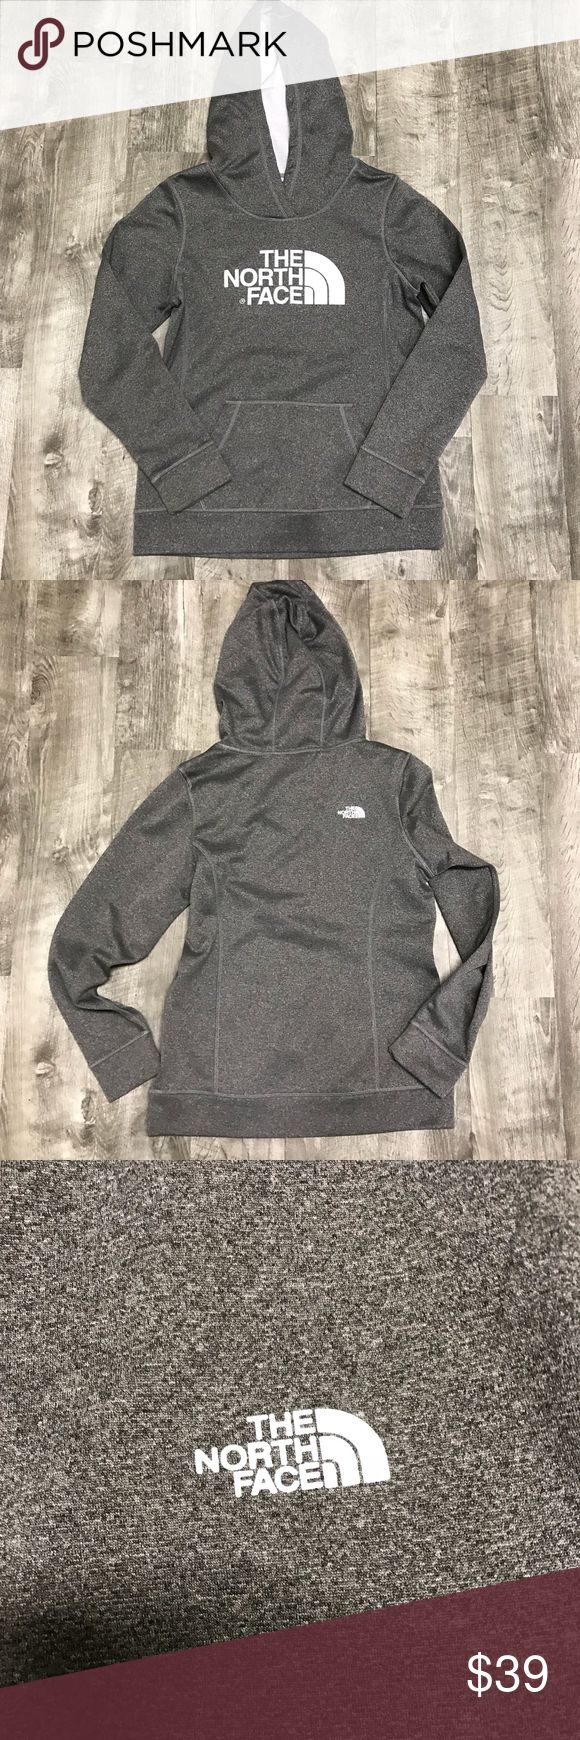 The North Face Hooded Sweatshirt Grey Women's Med The North Face Hooded Sweatshirt Grey Women's size medium. Excellent used condition. Shows little to no wear. Check out my closet for other namebrand items to bundle with to save 15% and combined shipping. The North Face Tops Sweatshirts & Hoodies